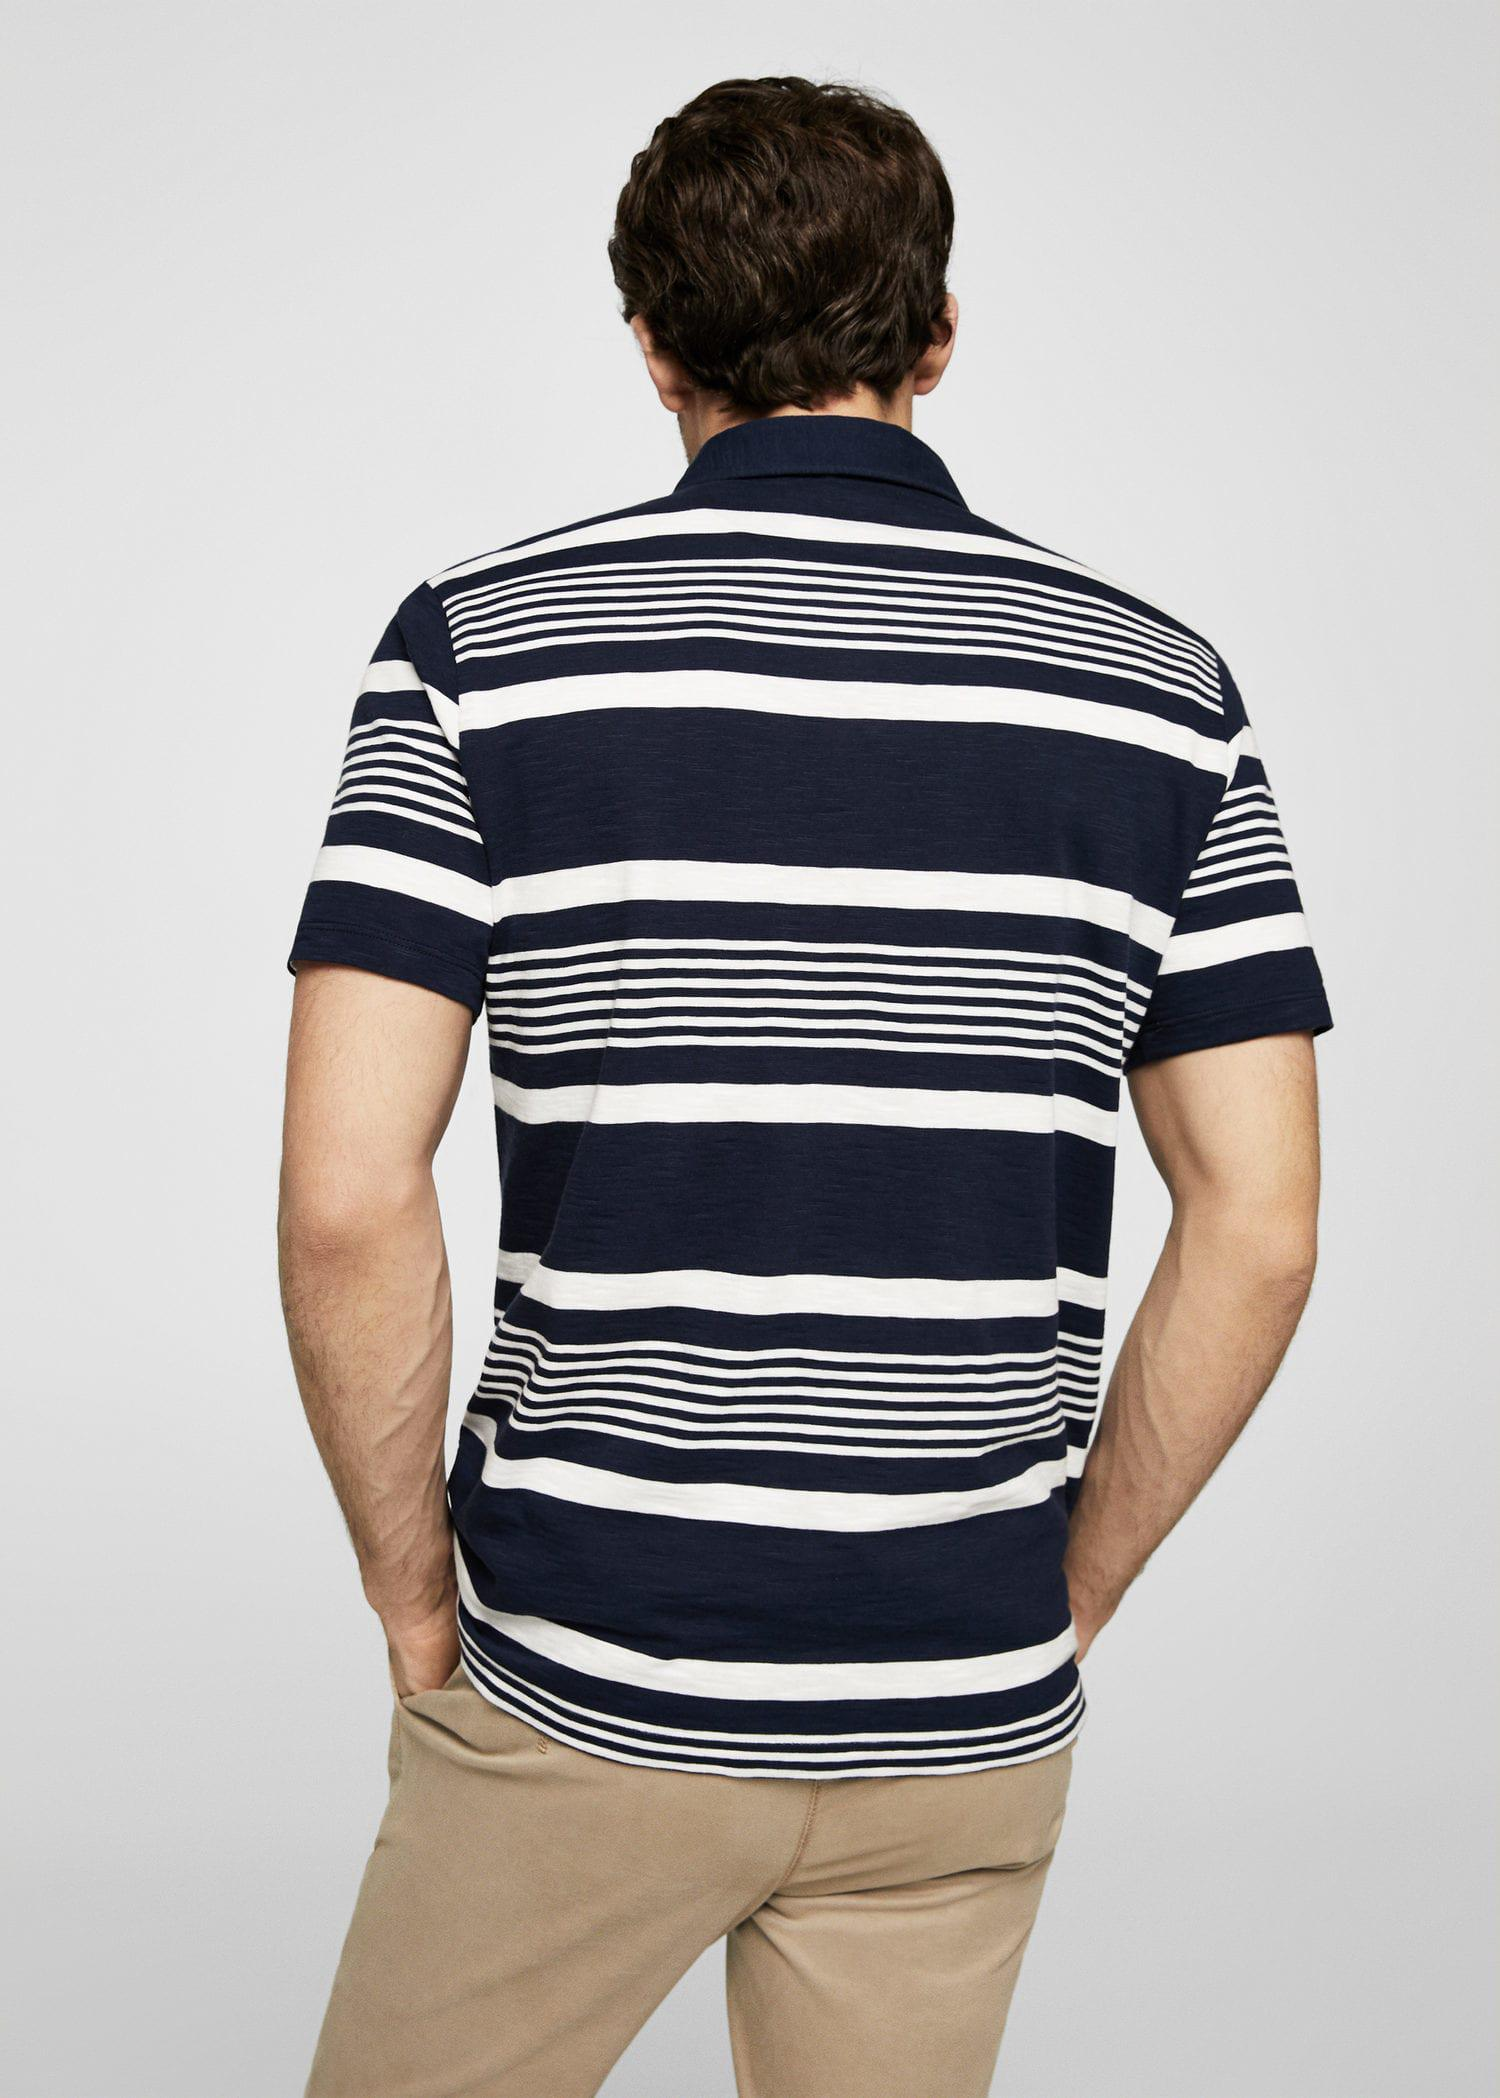 Espionage Polo Top with Contrast Striped Edge